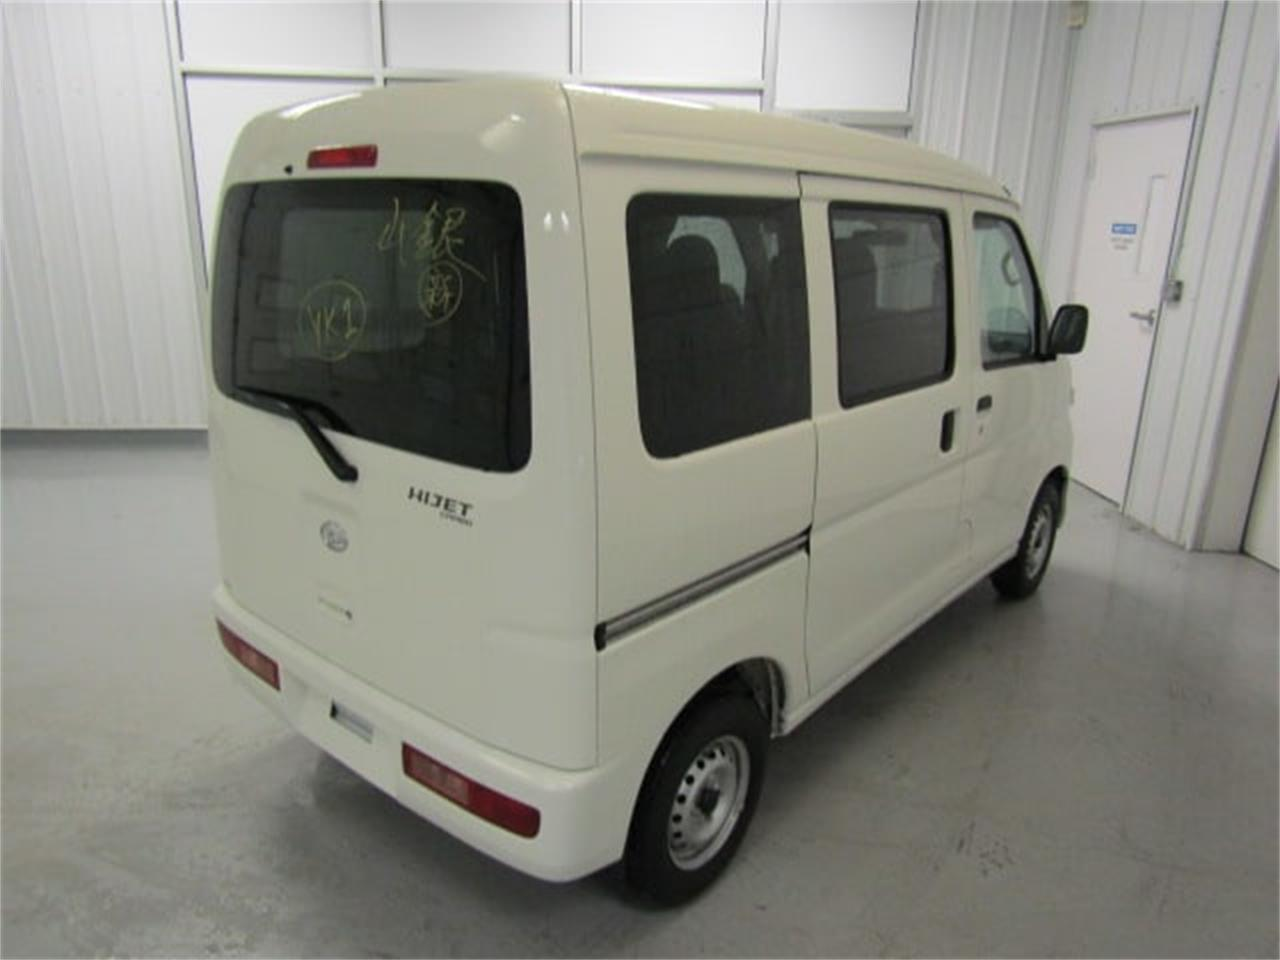 Large Picture of '17 HiJet located in Virginia Offered by Duncan Imports & Classic Cars - LBXV